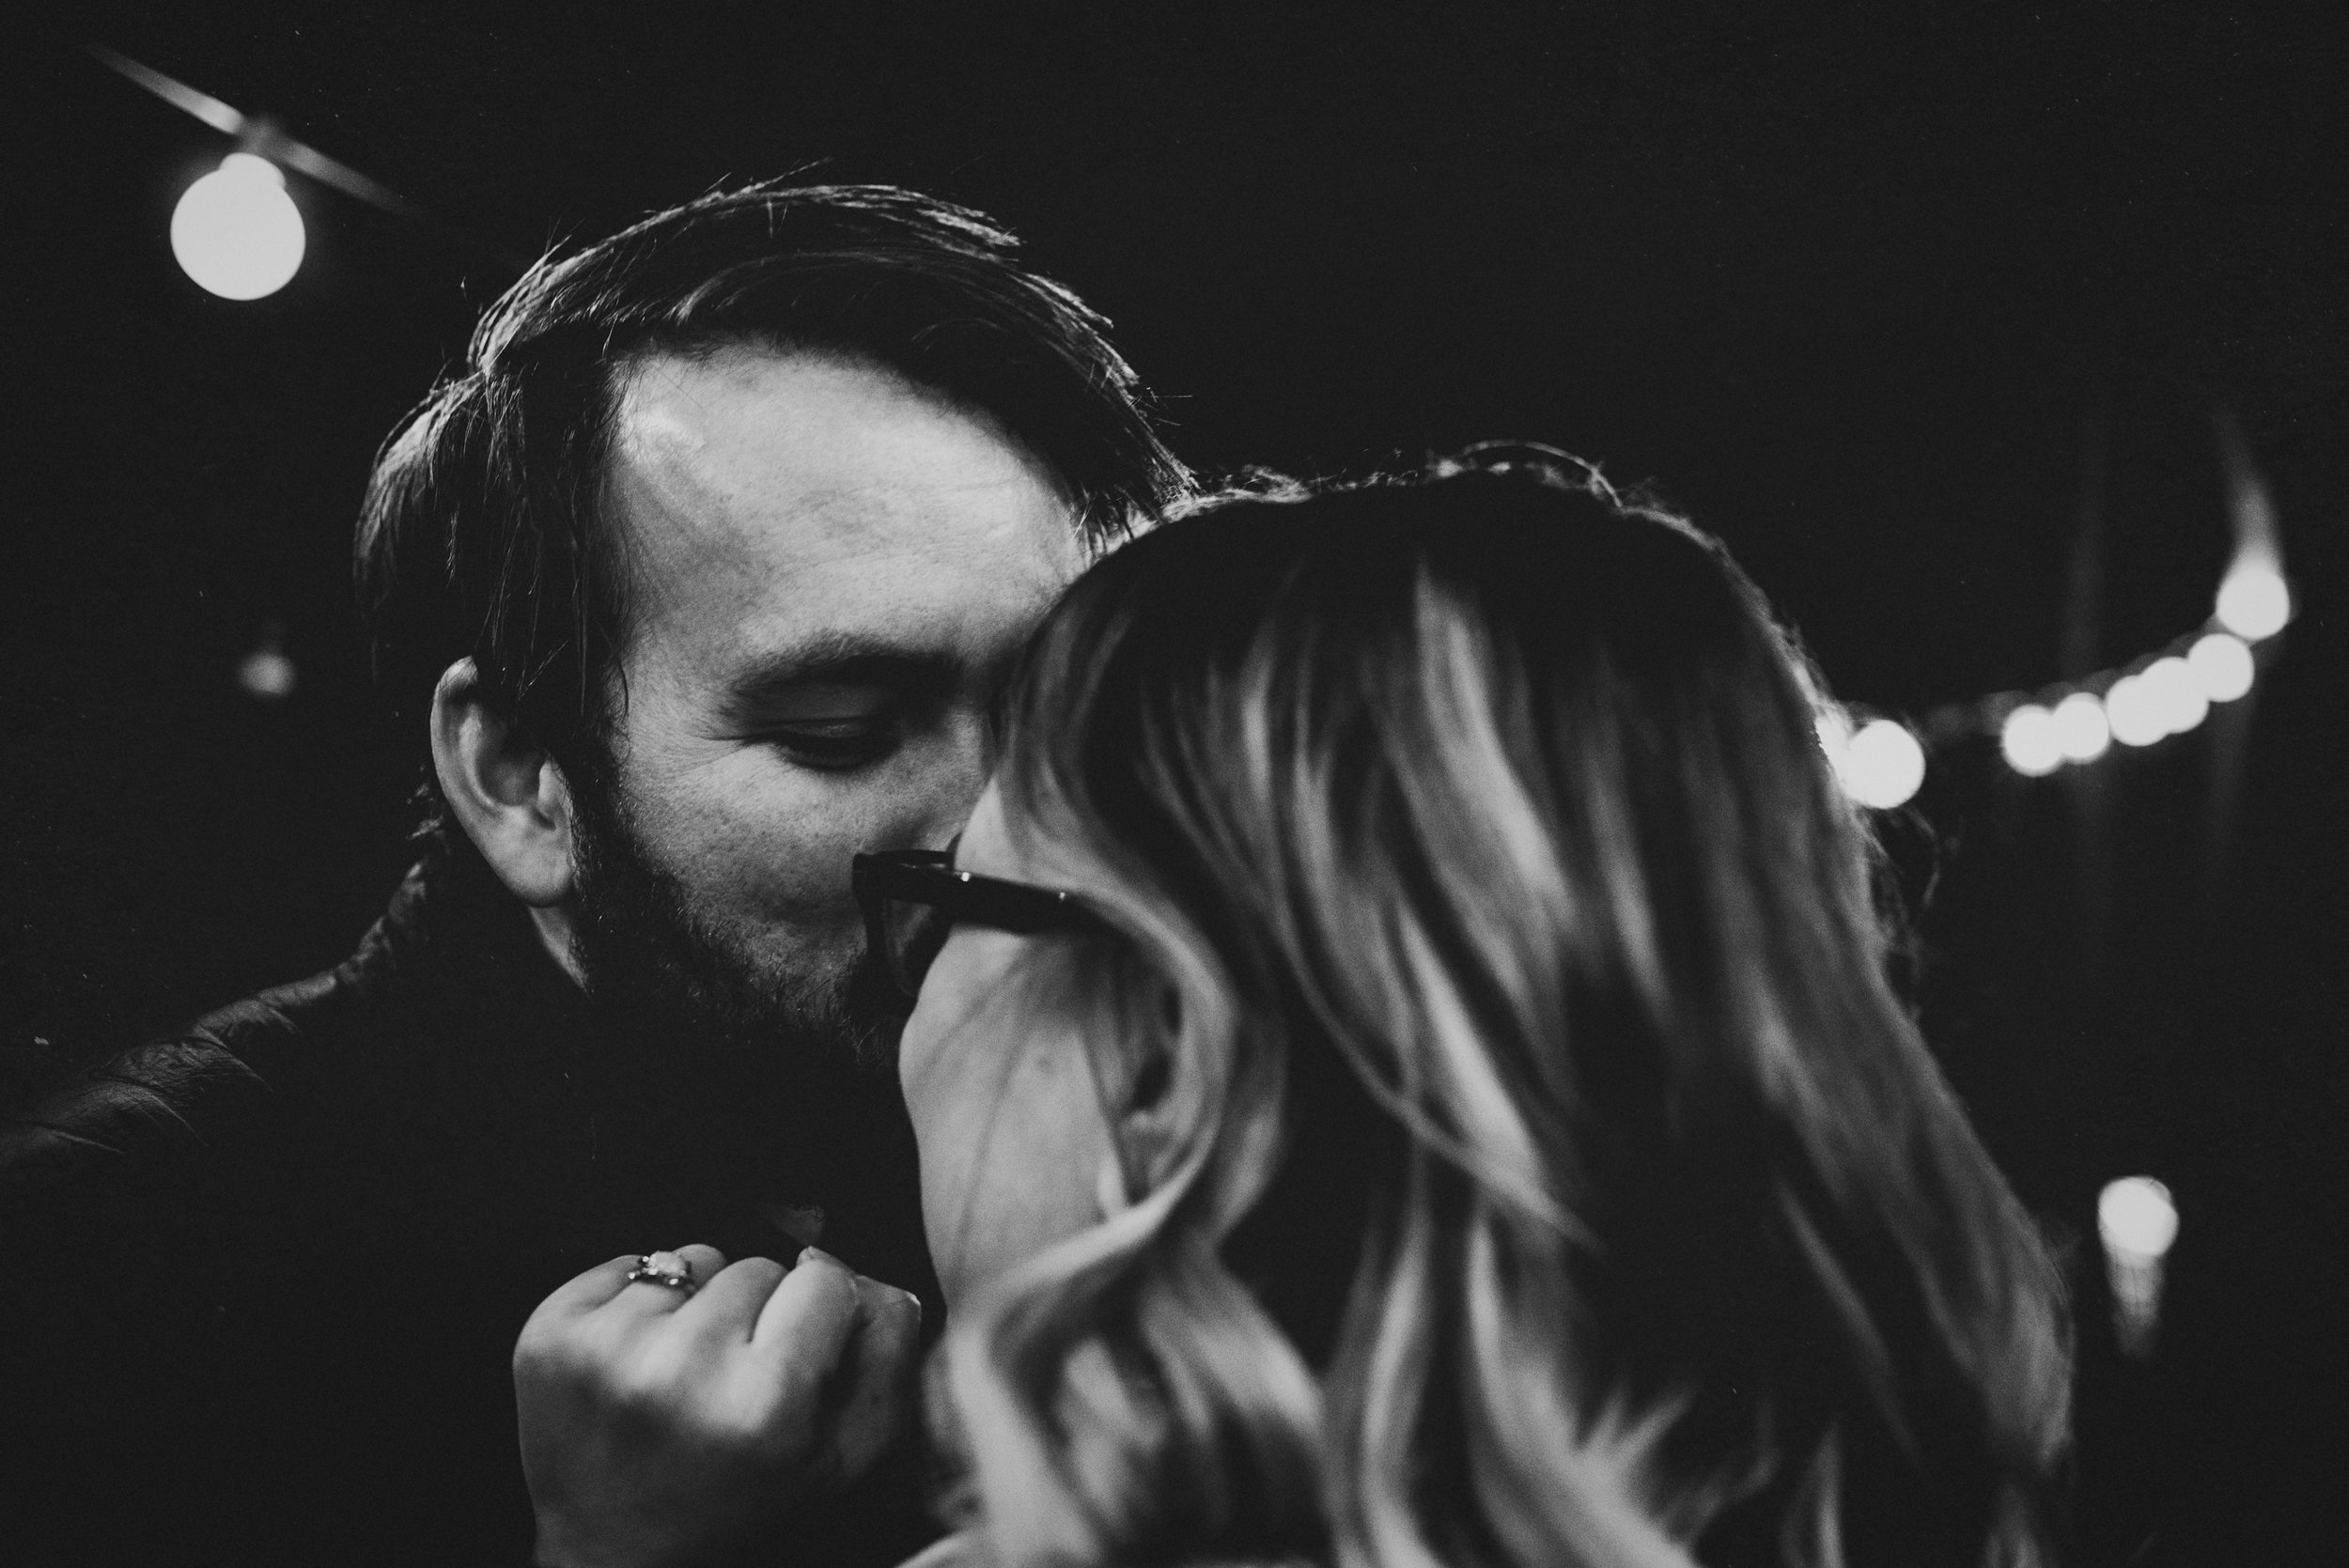 He was warming her nose with his kiss in Greenboro, North Carolina